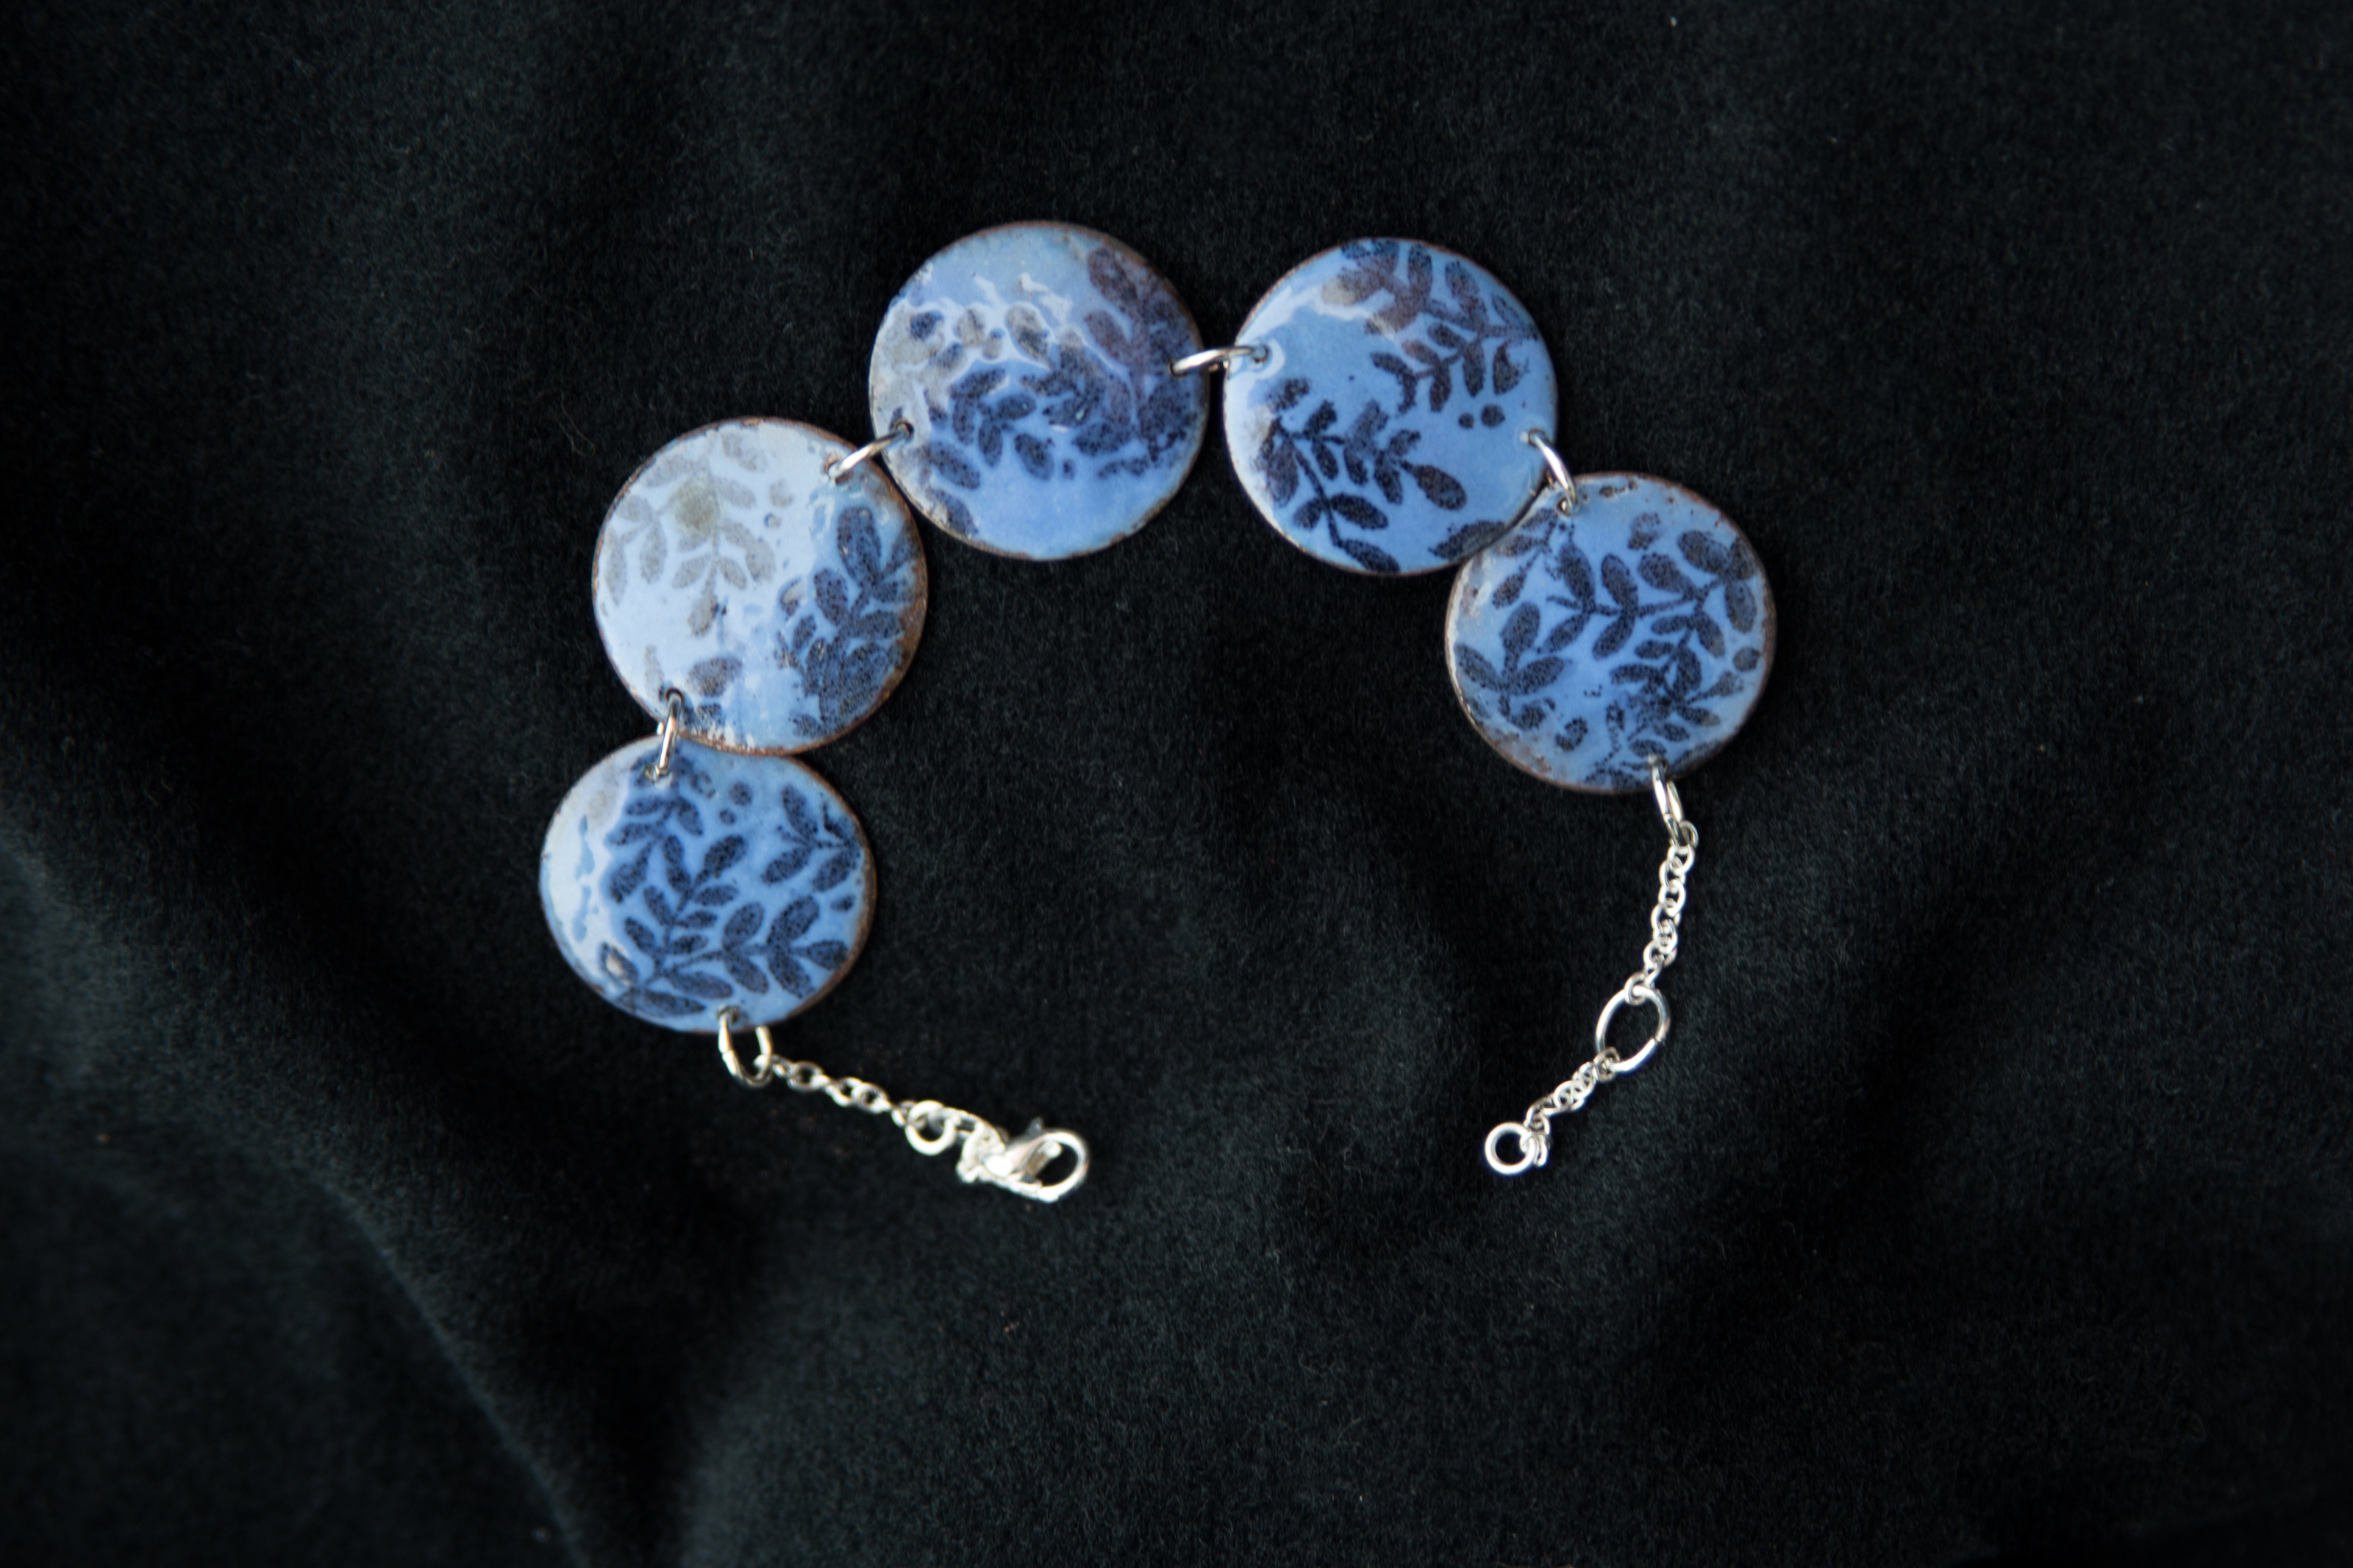 Hand crafted glass enamel bracelet